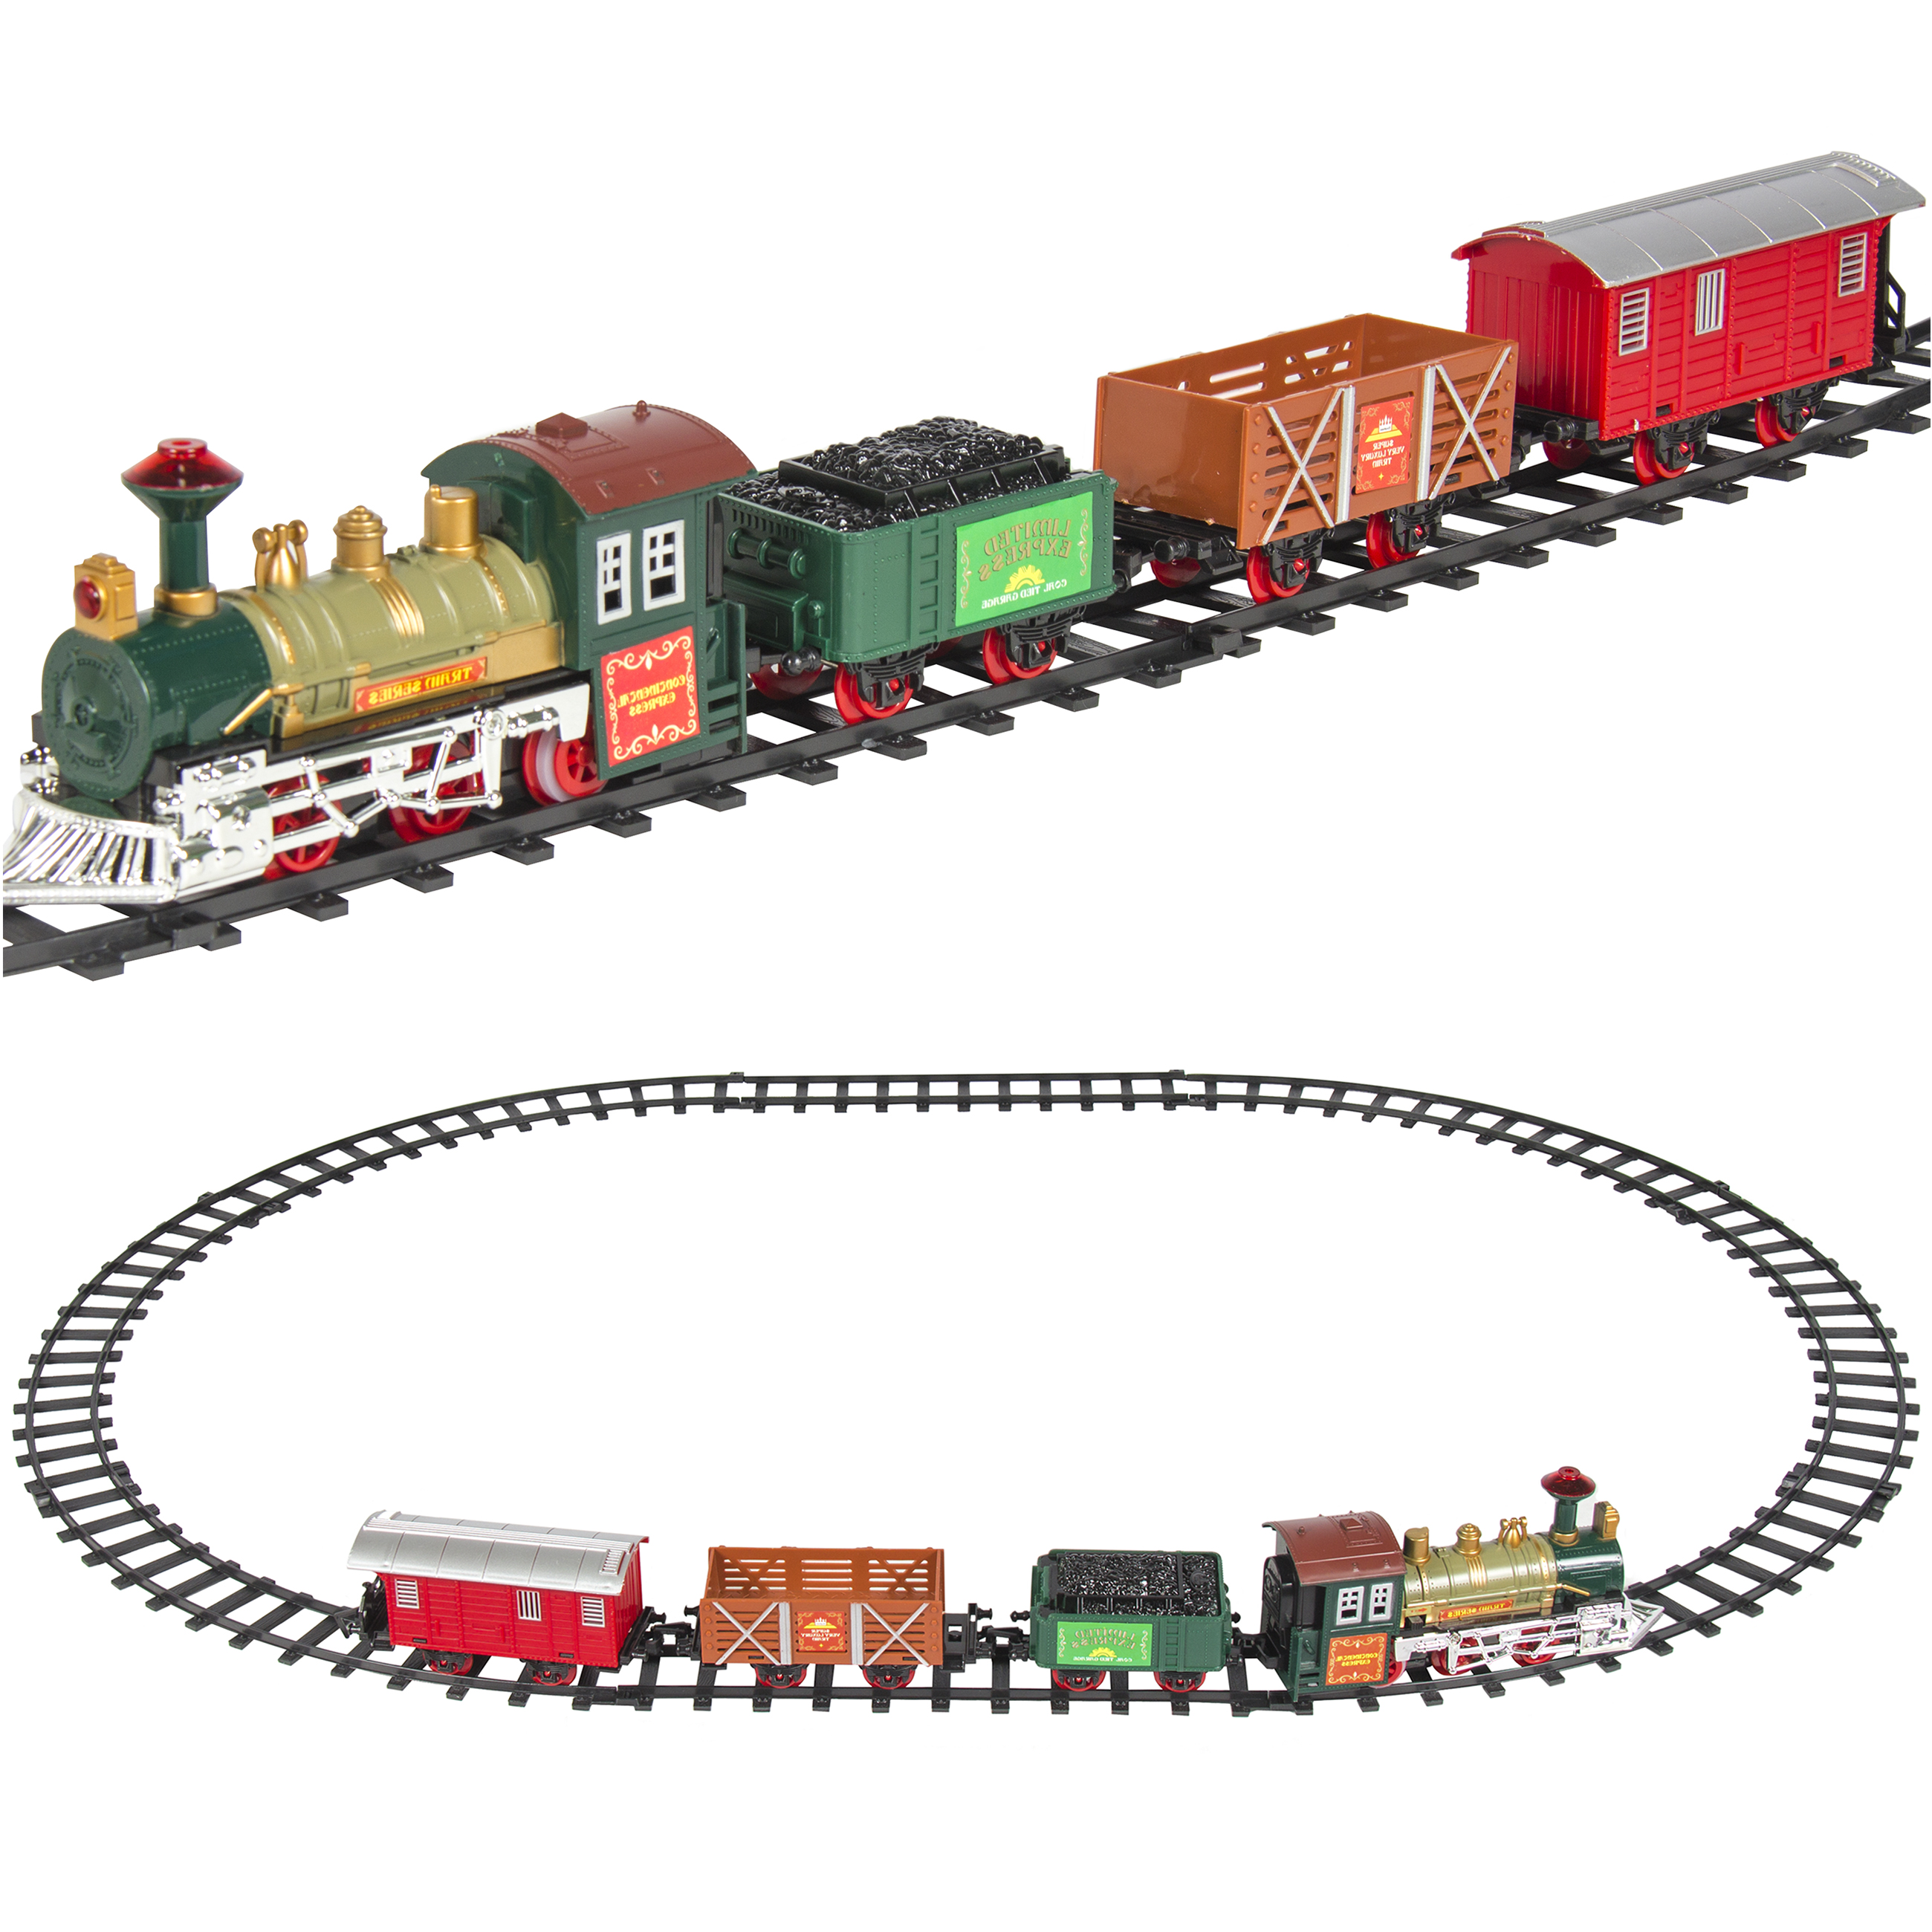 Best Choice Products Kids Classic Battery-Operated Electric Railway Train Car Locomotive Track Set for Play Toy, Decor w/ Music, Lights - Multicolor